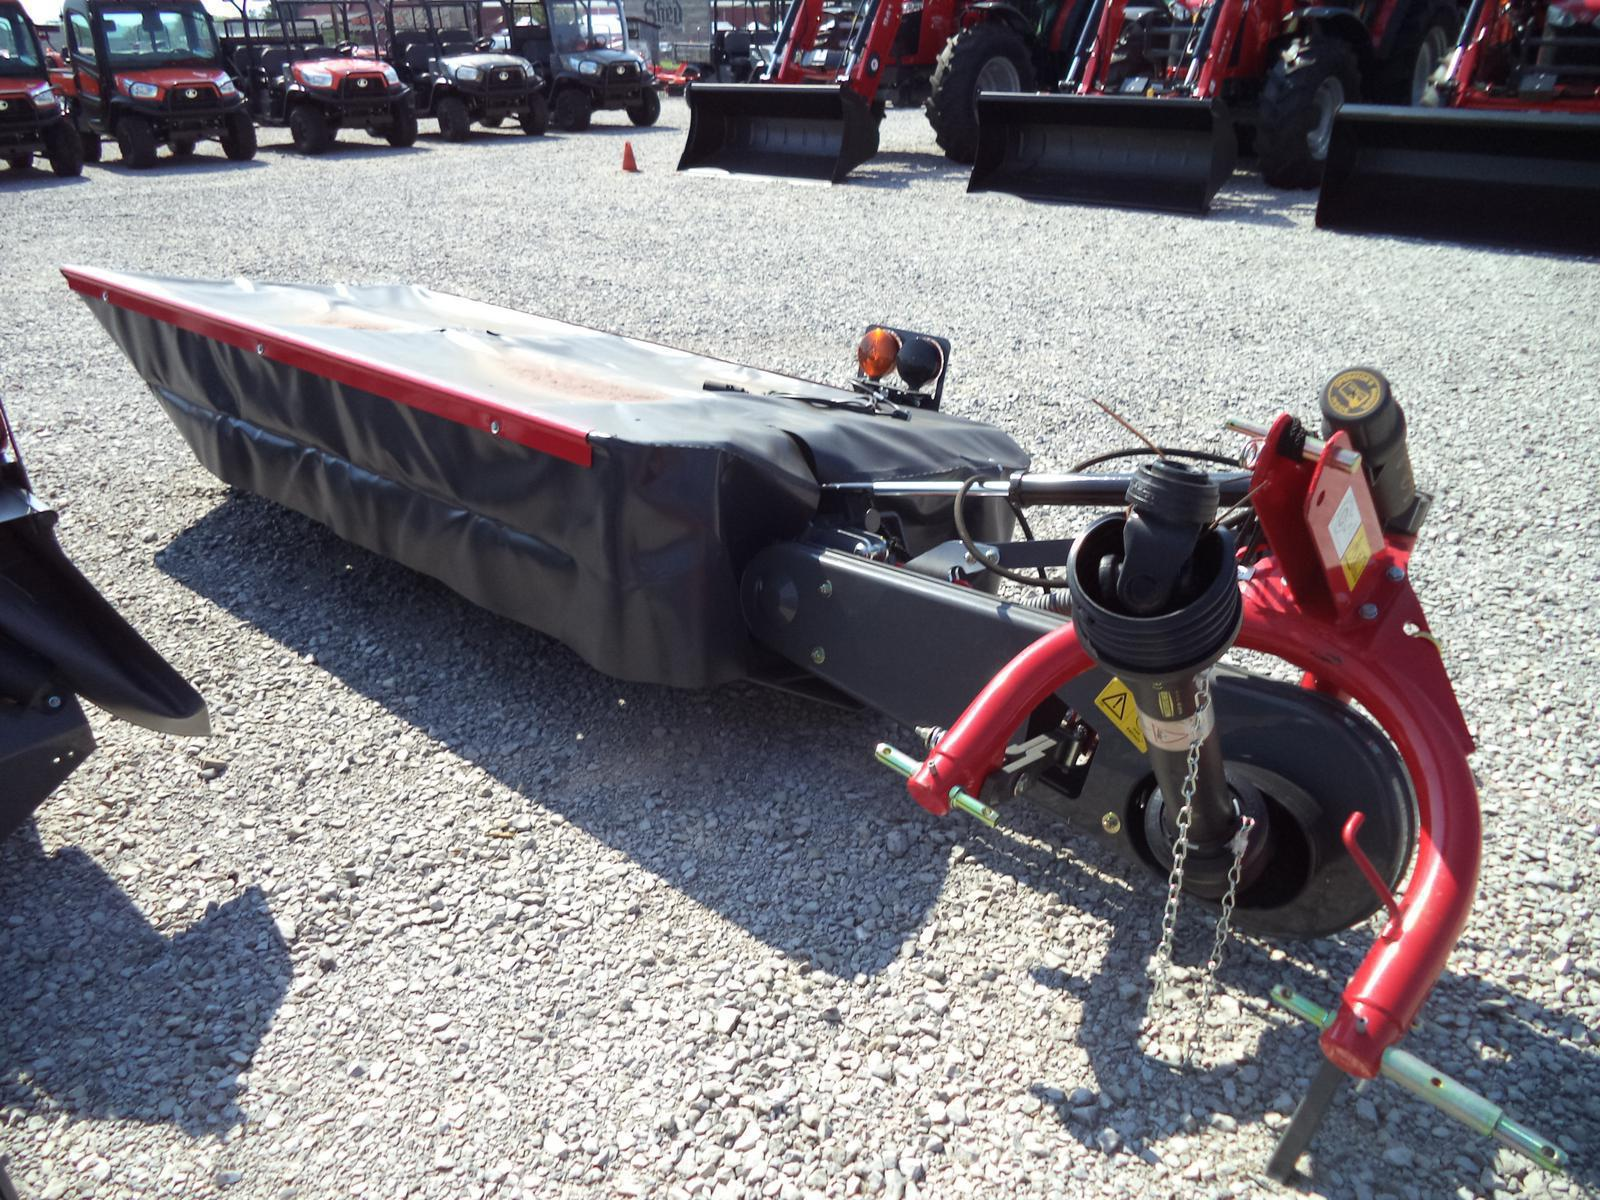 Inventory Tyler Brothers Farm Equipment Maryville, TN (865) 983-2245